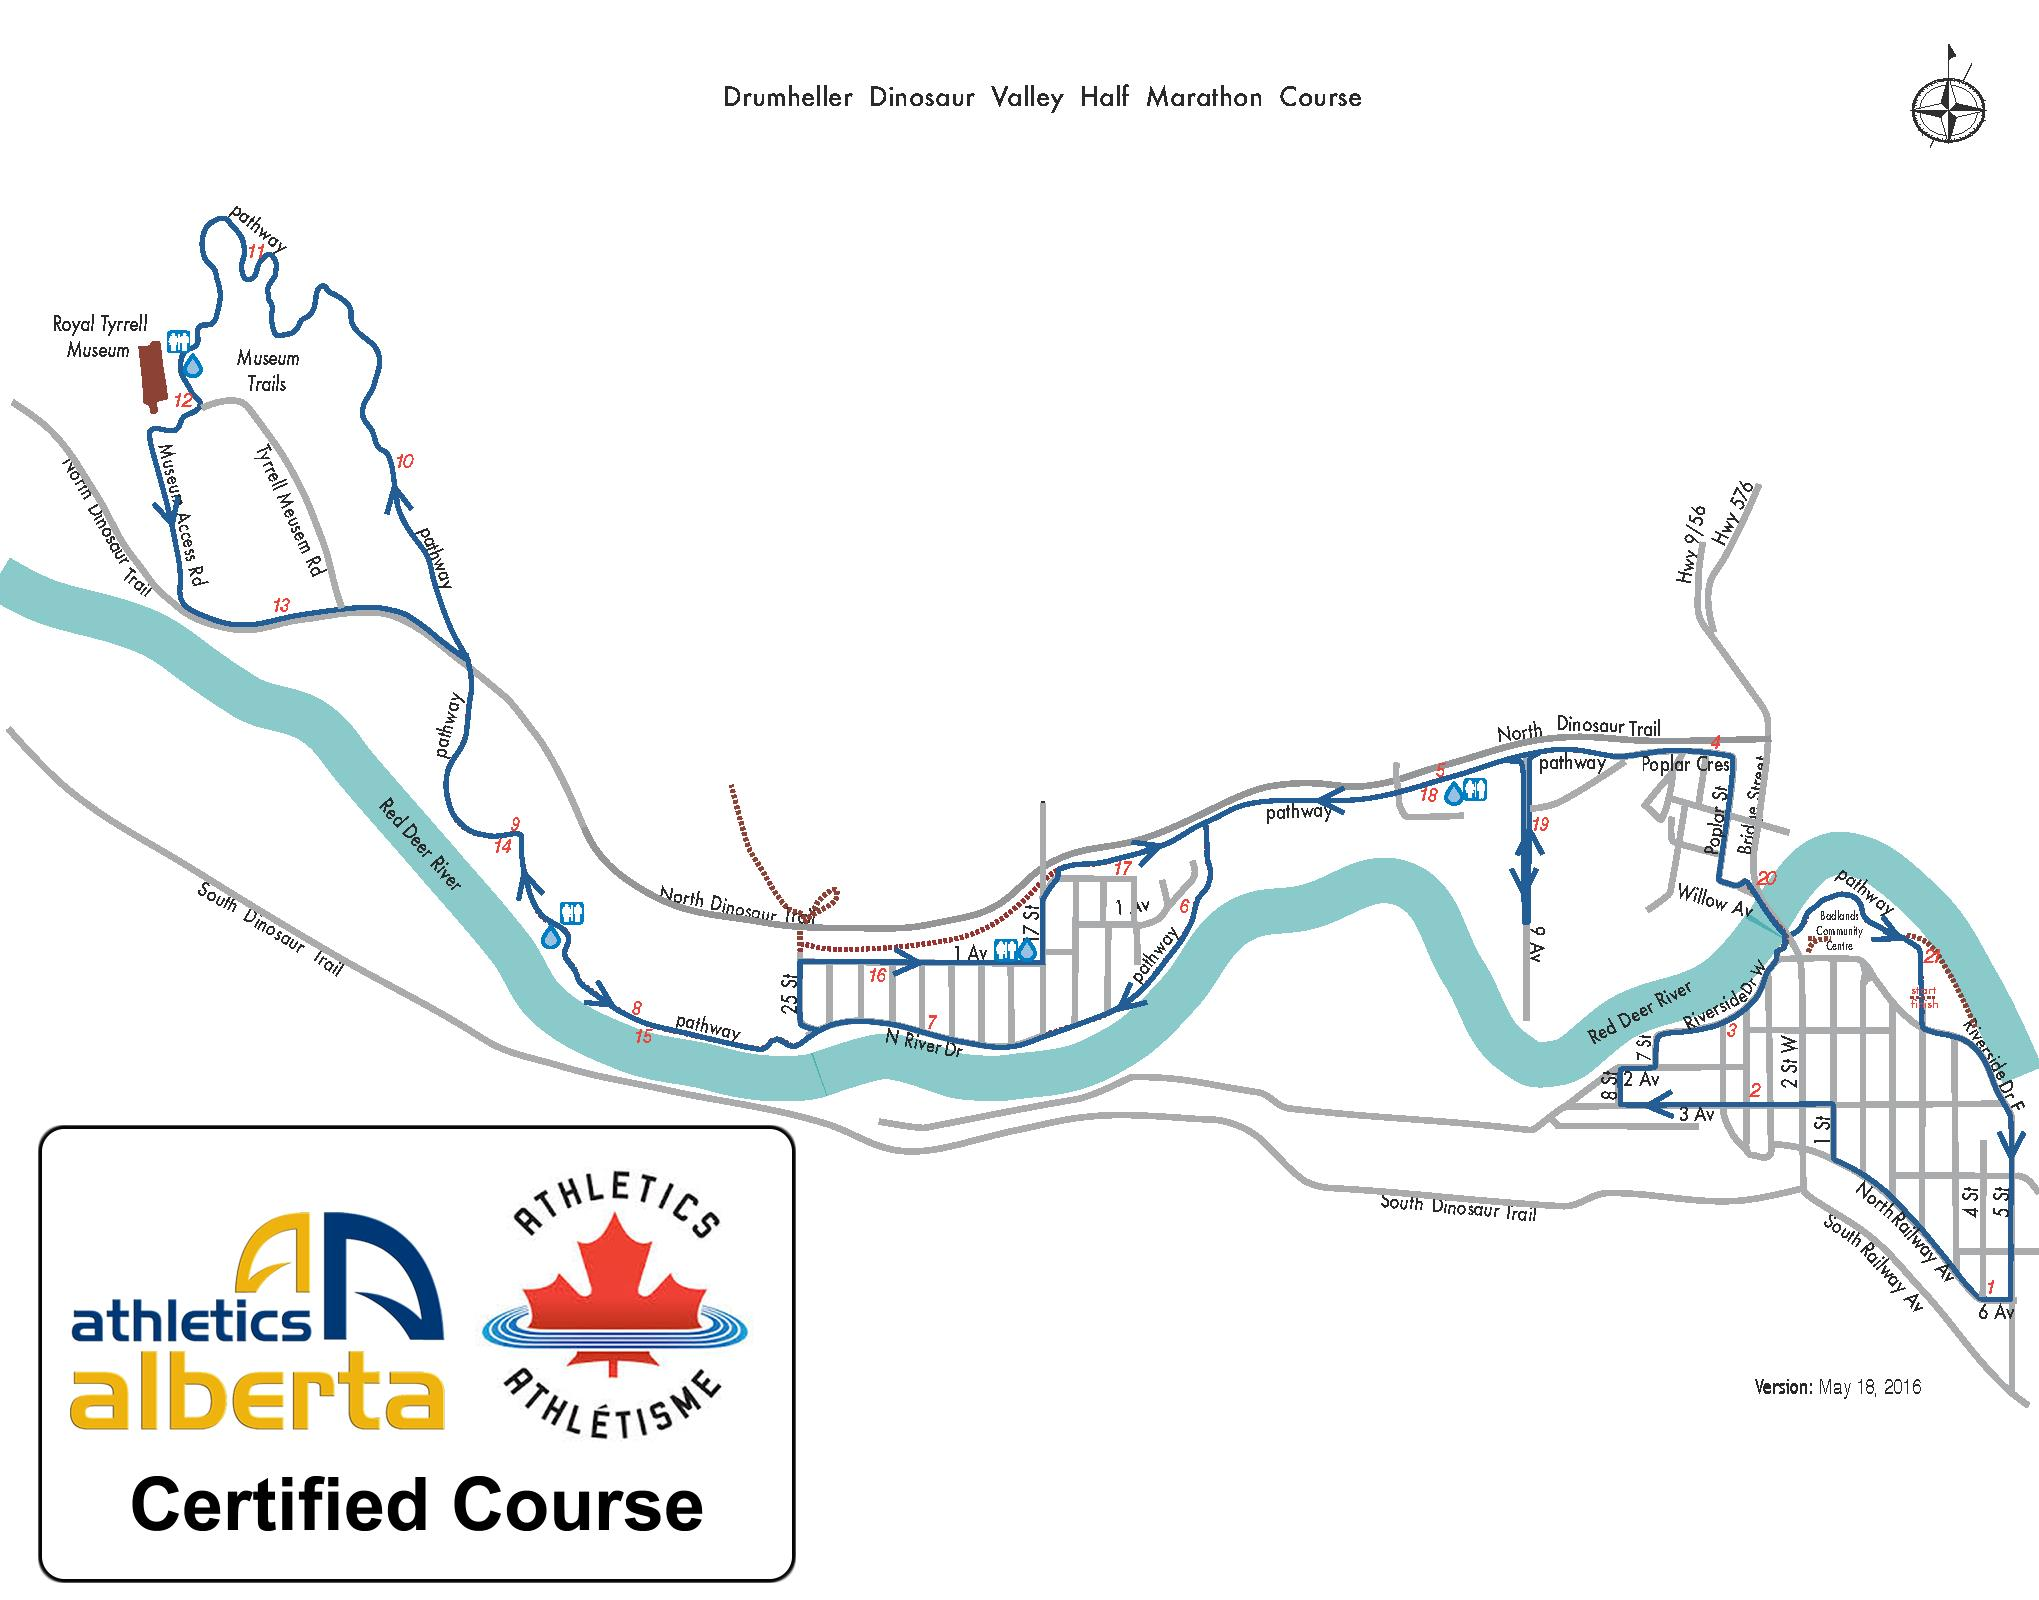 Drumheller Dinosaur Half Marathon Course Map Certified Course Athletics Canada